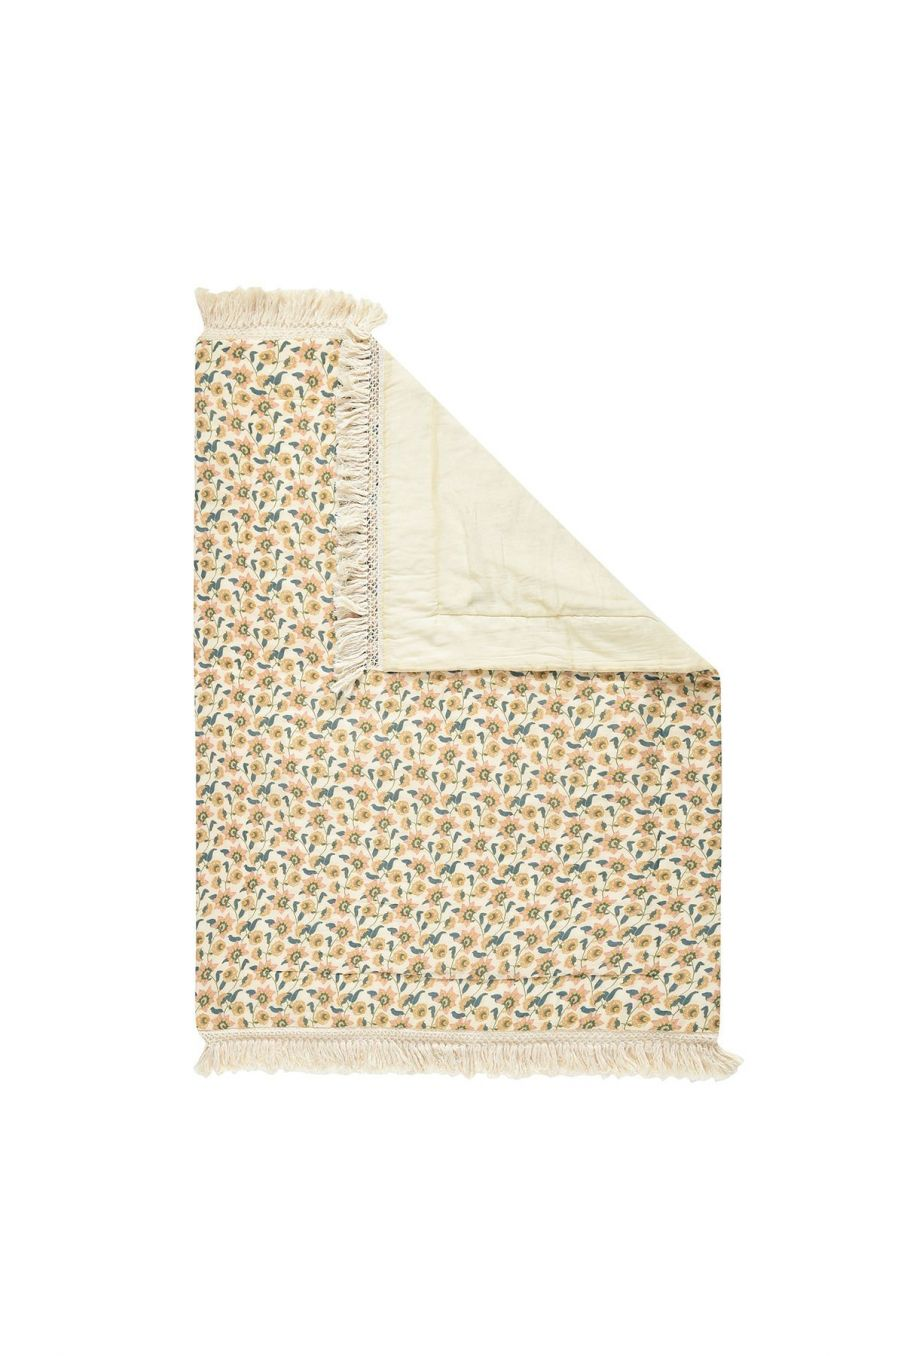 boheme chic vintage petit plaid maison enoha cream flowers